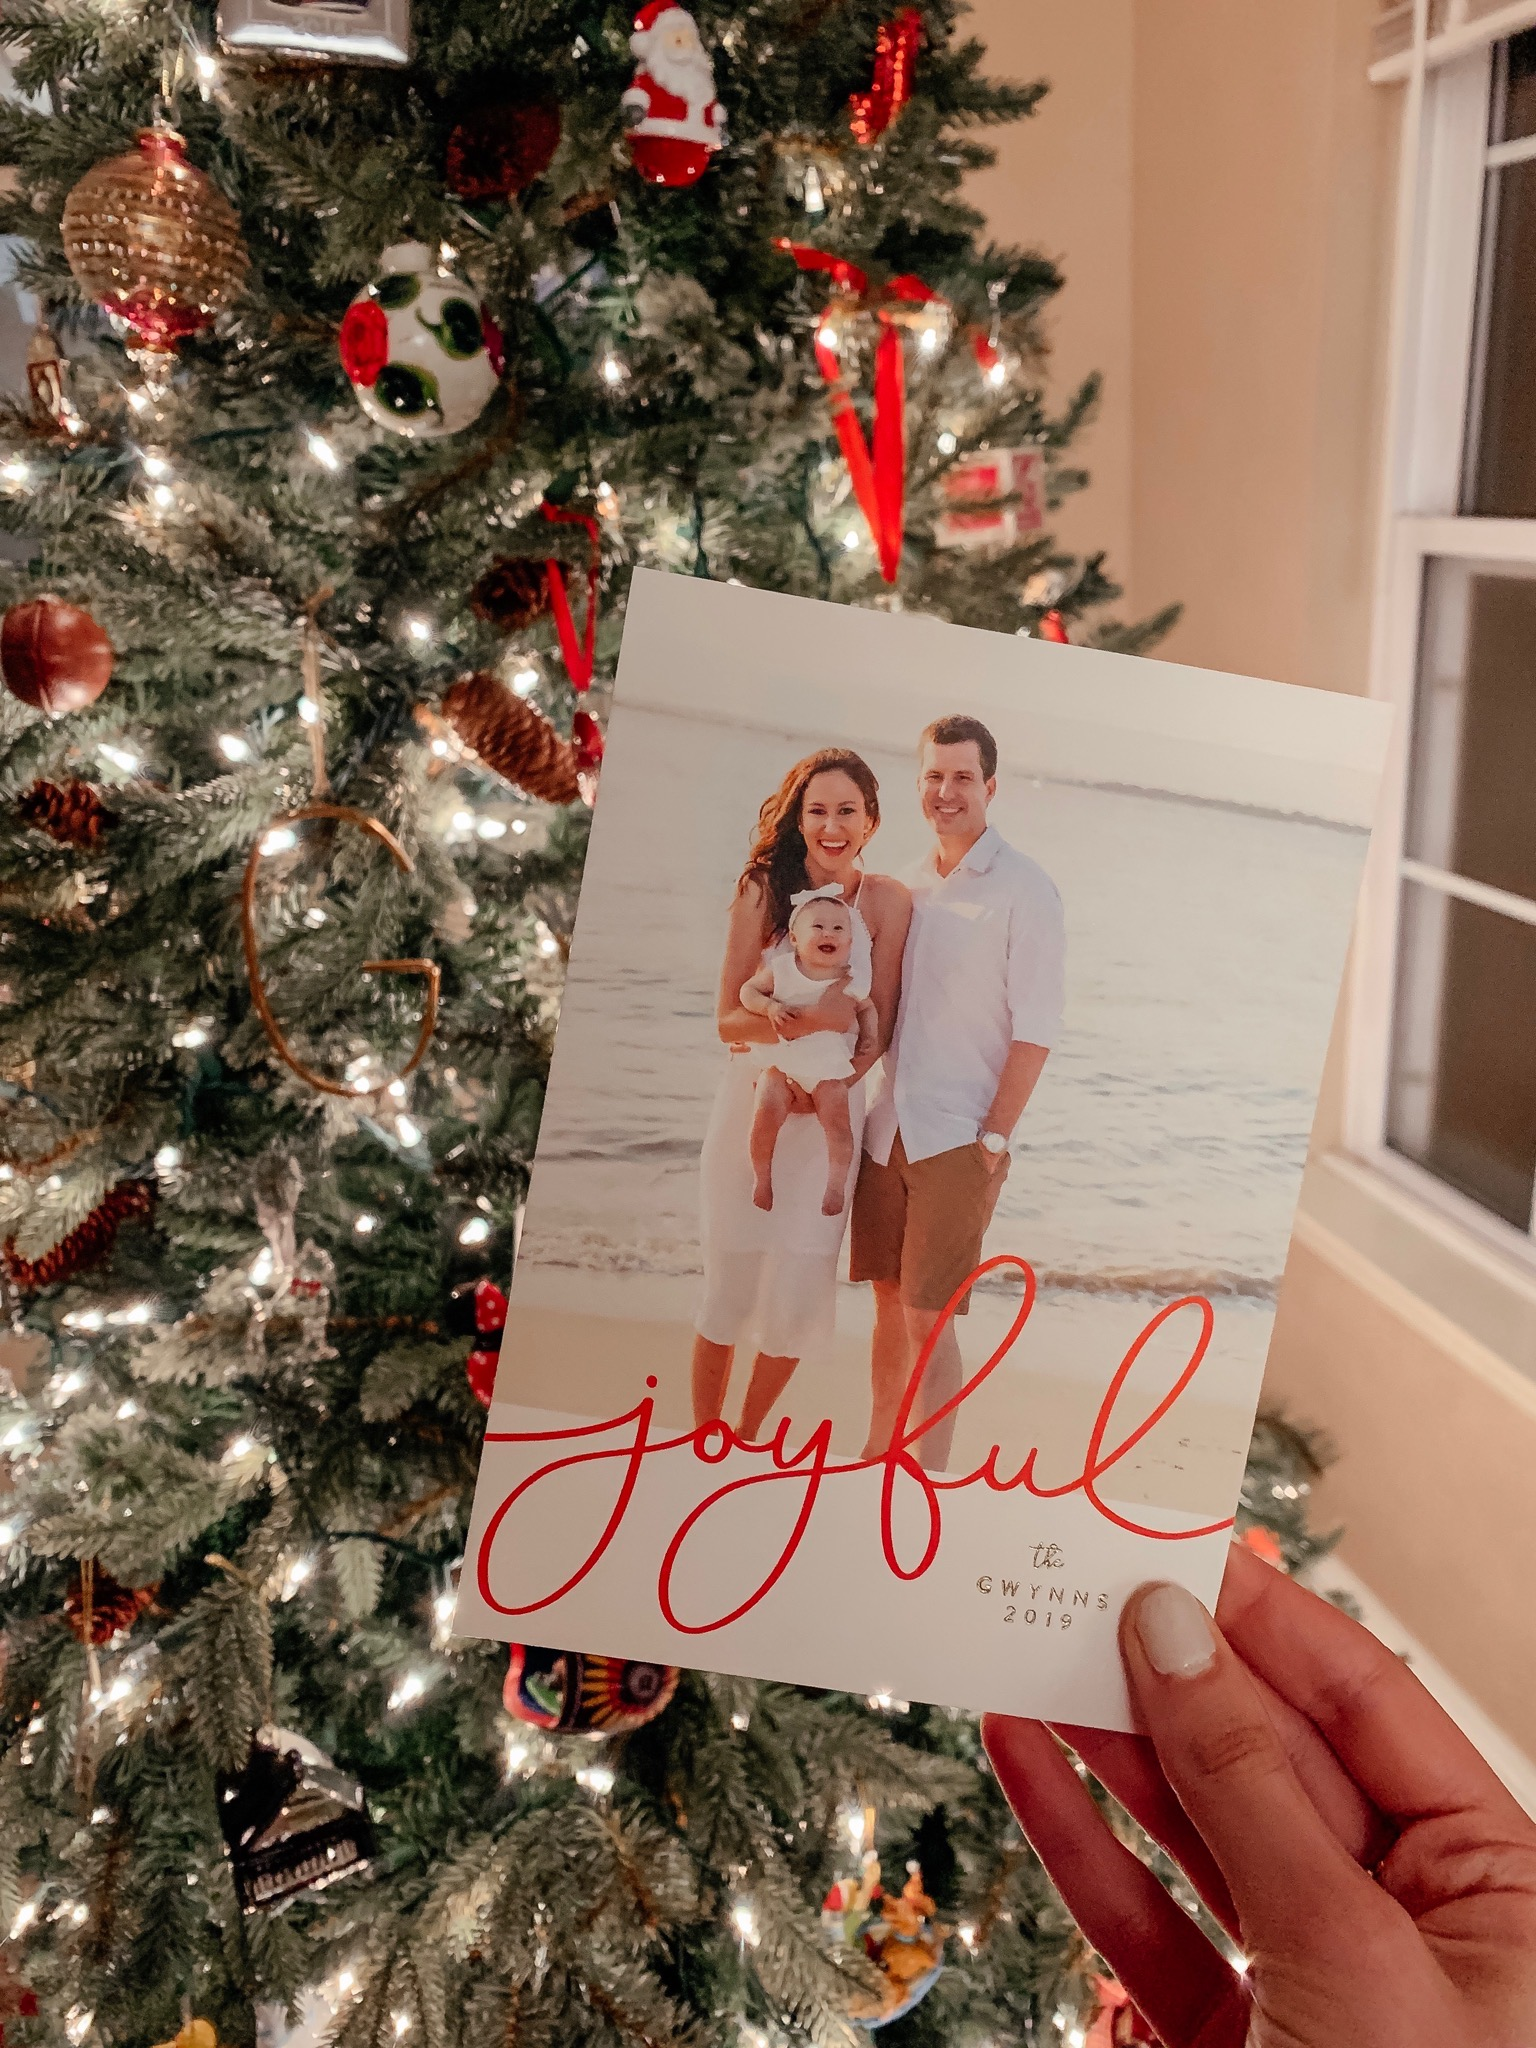 Our 2019 Christmas Card with Minted - on Coming Up Roses